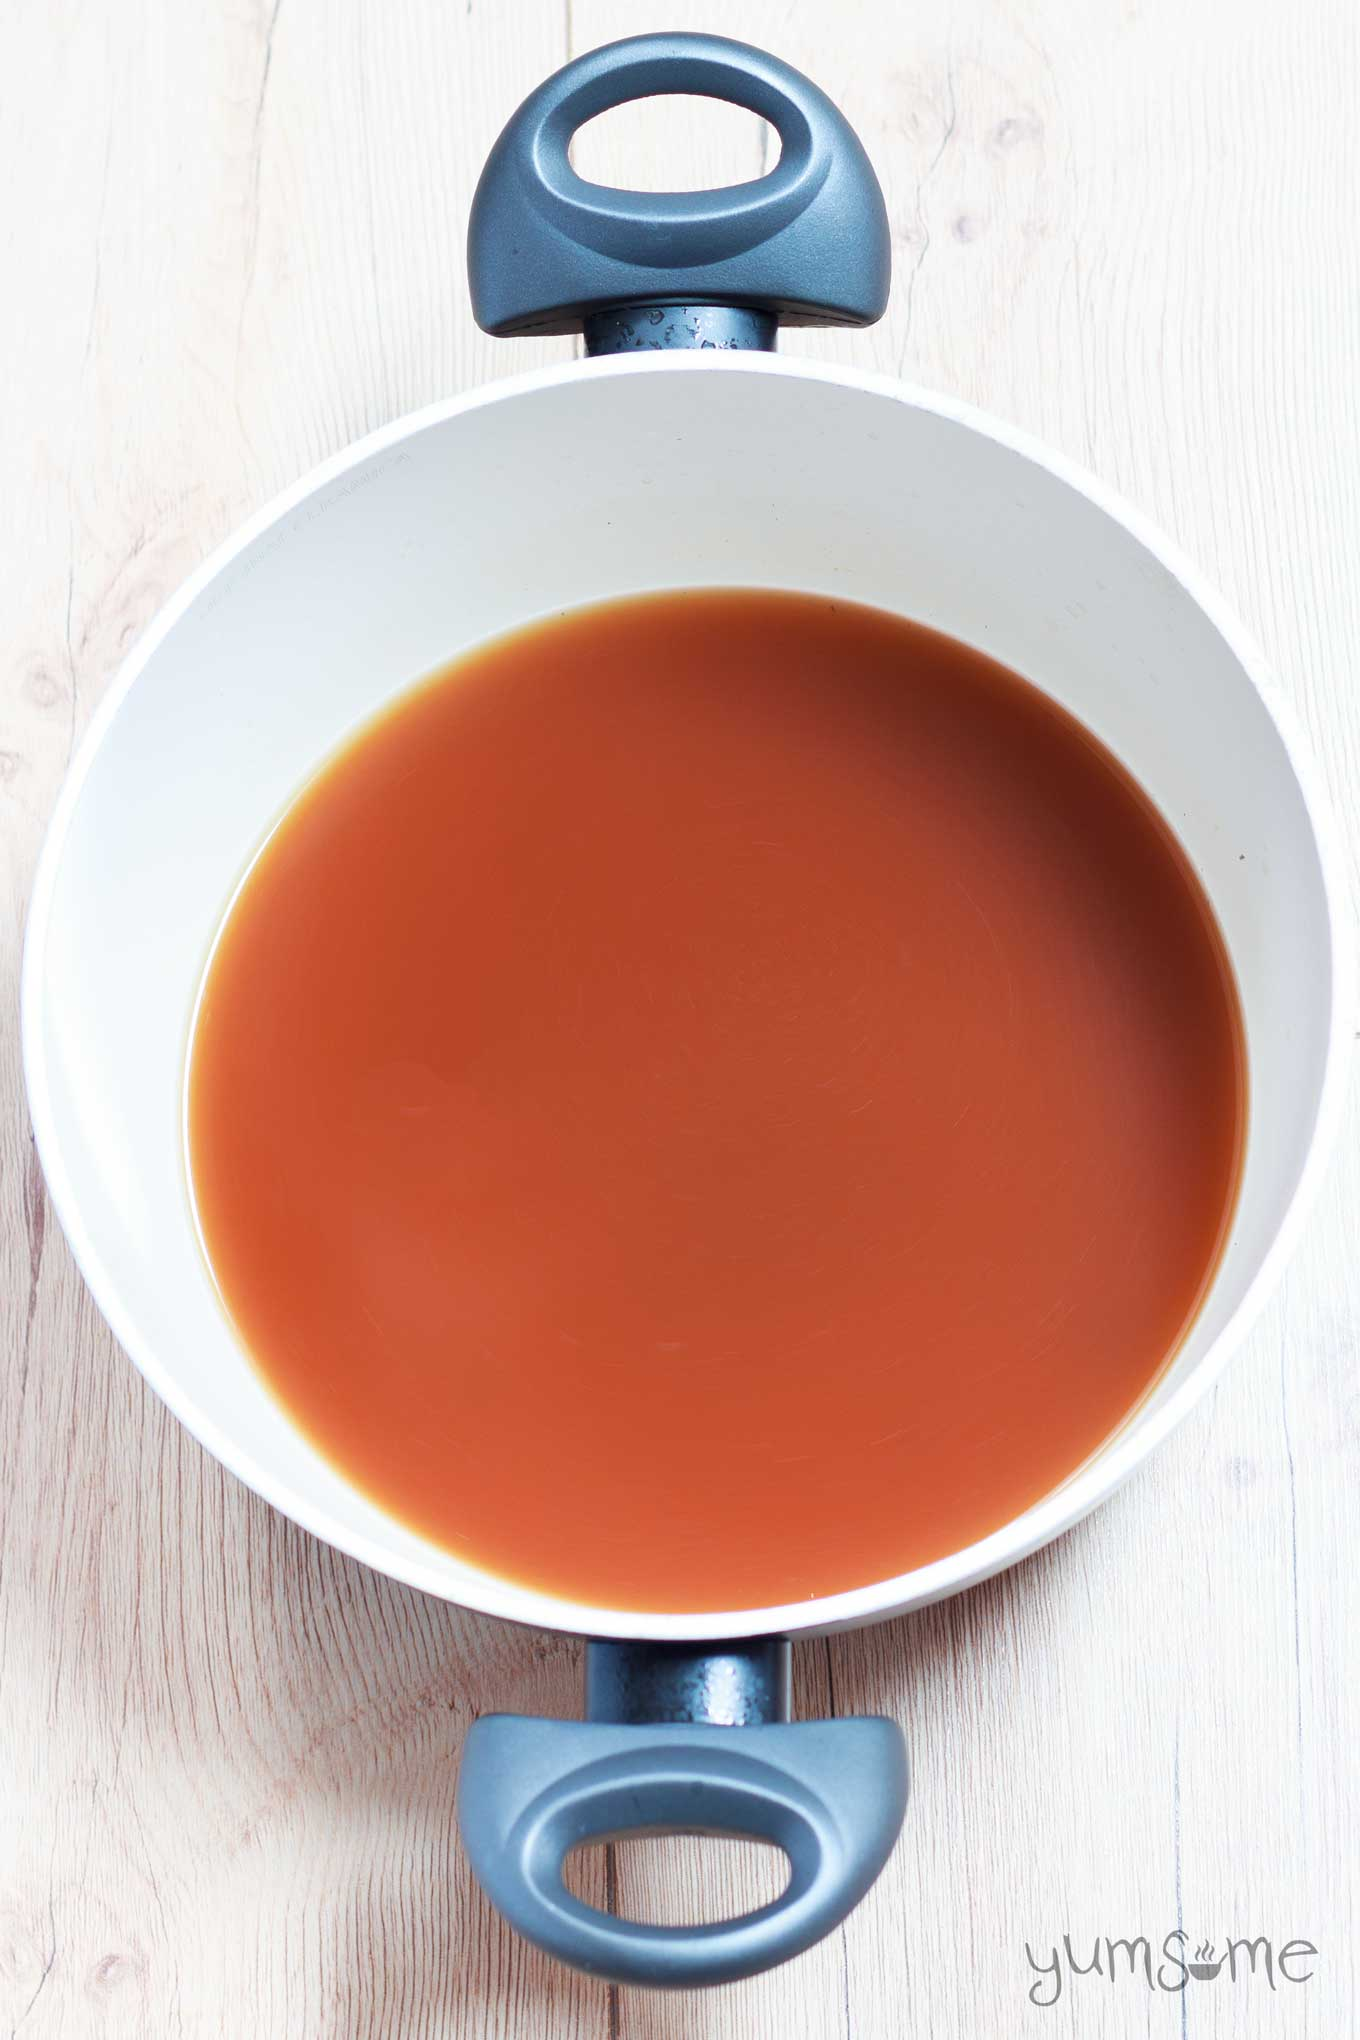 a pan of home-made vegetable broth | yumsome.com